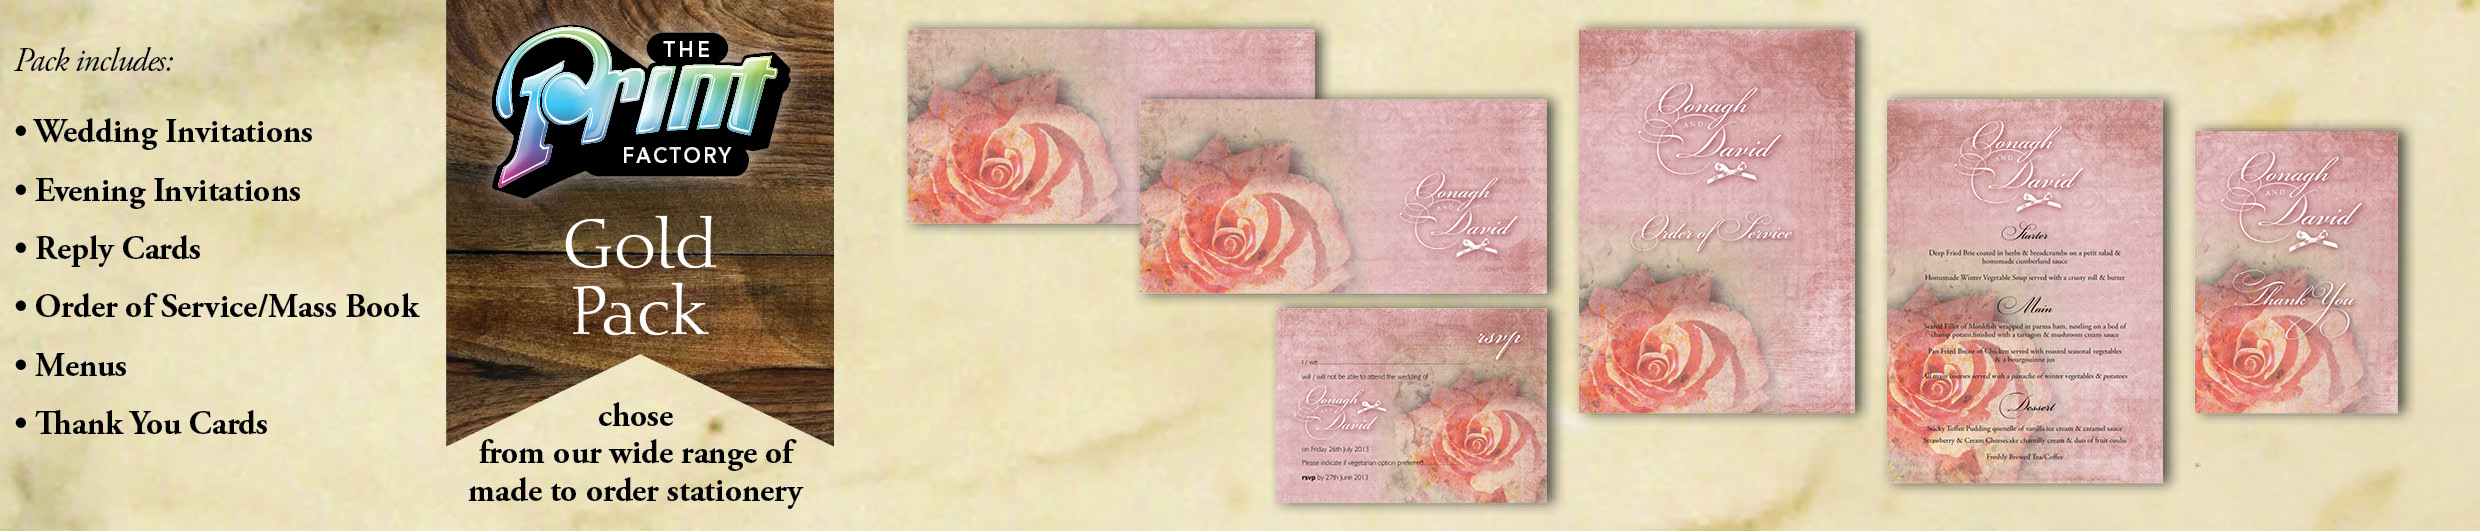 PF Wedding Banners packs4